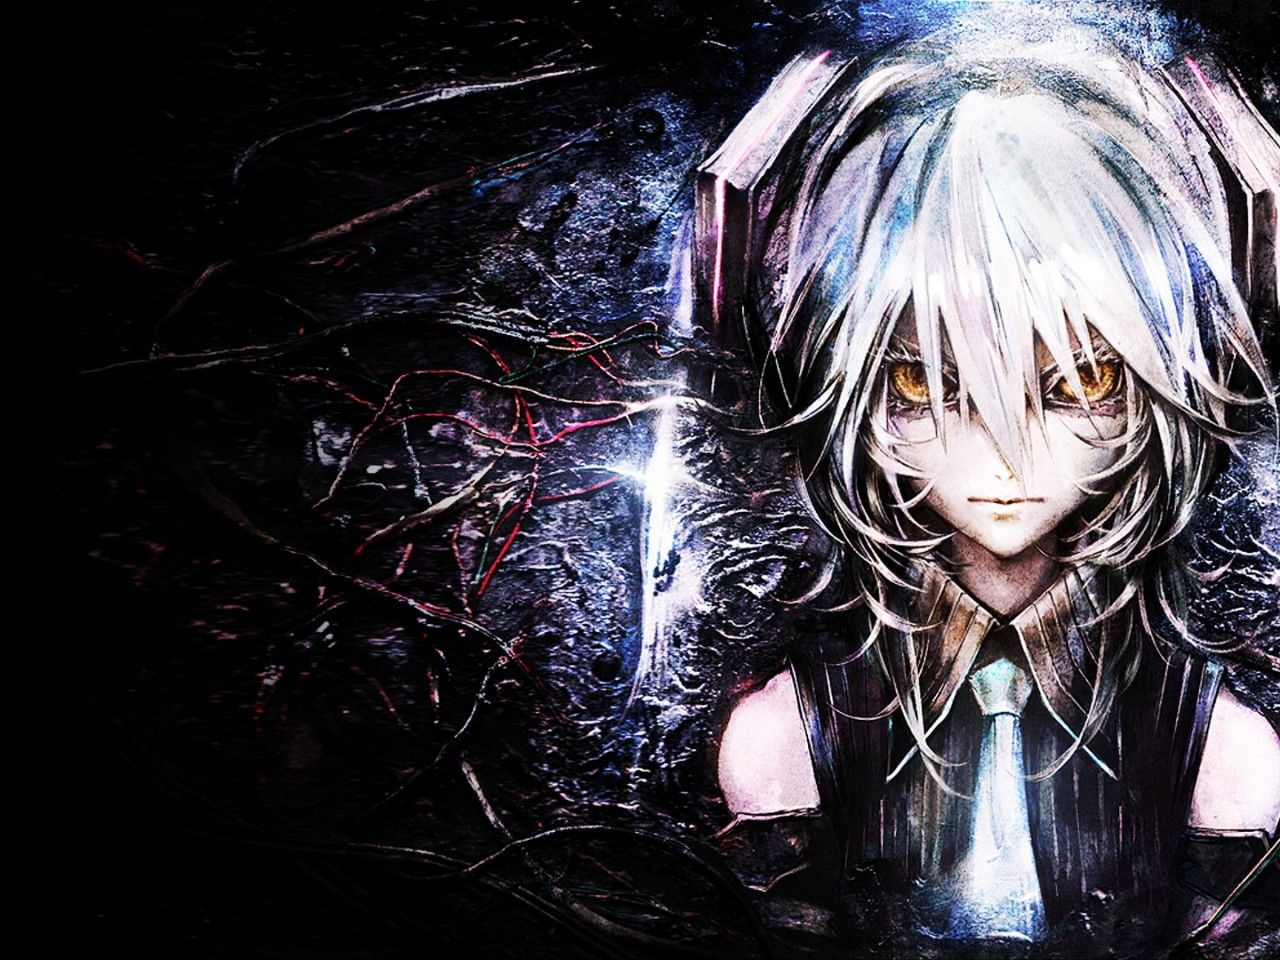 Cool Anime HD Desktop Image (With images) | Cool anime wallpapers, Hd anime wallpapers, Anime music